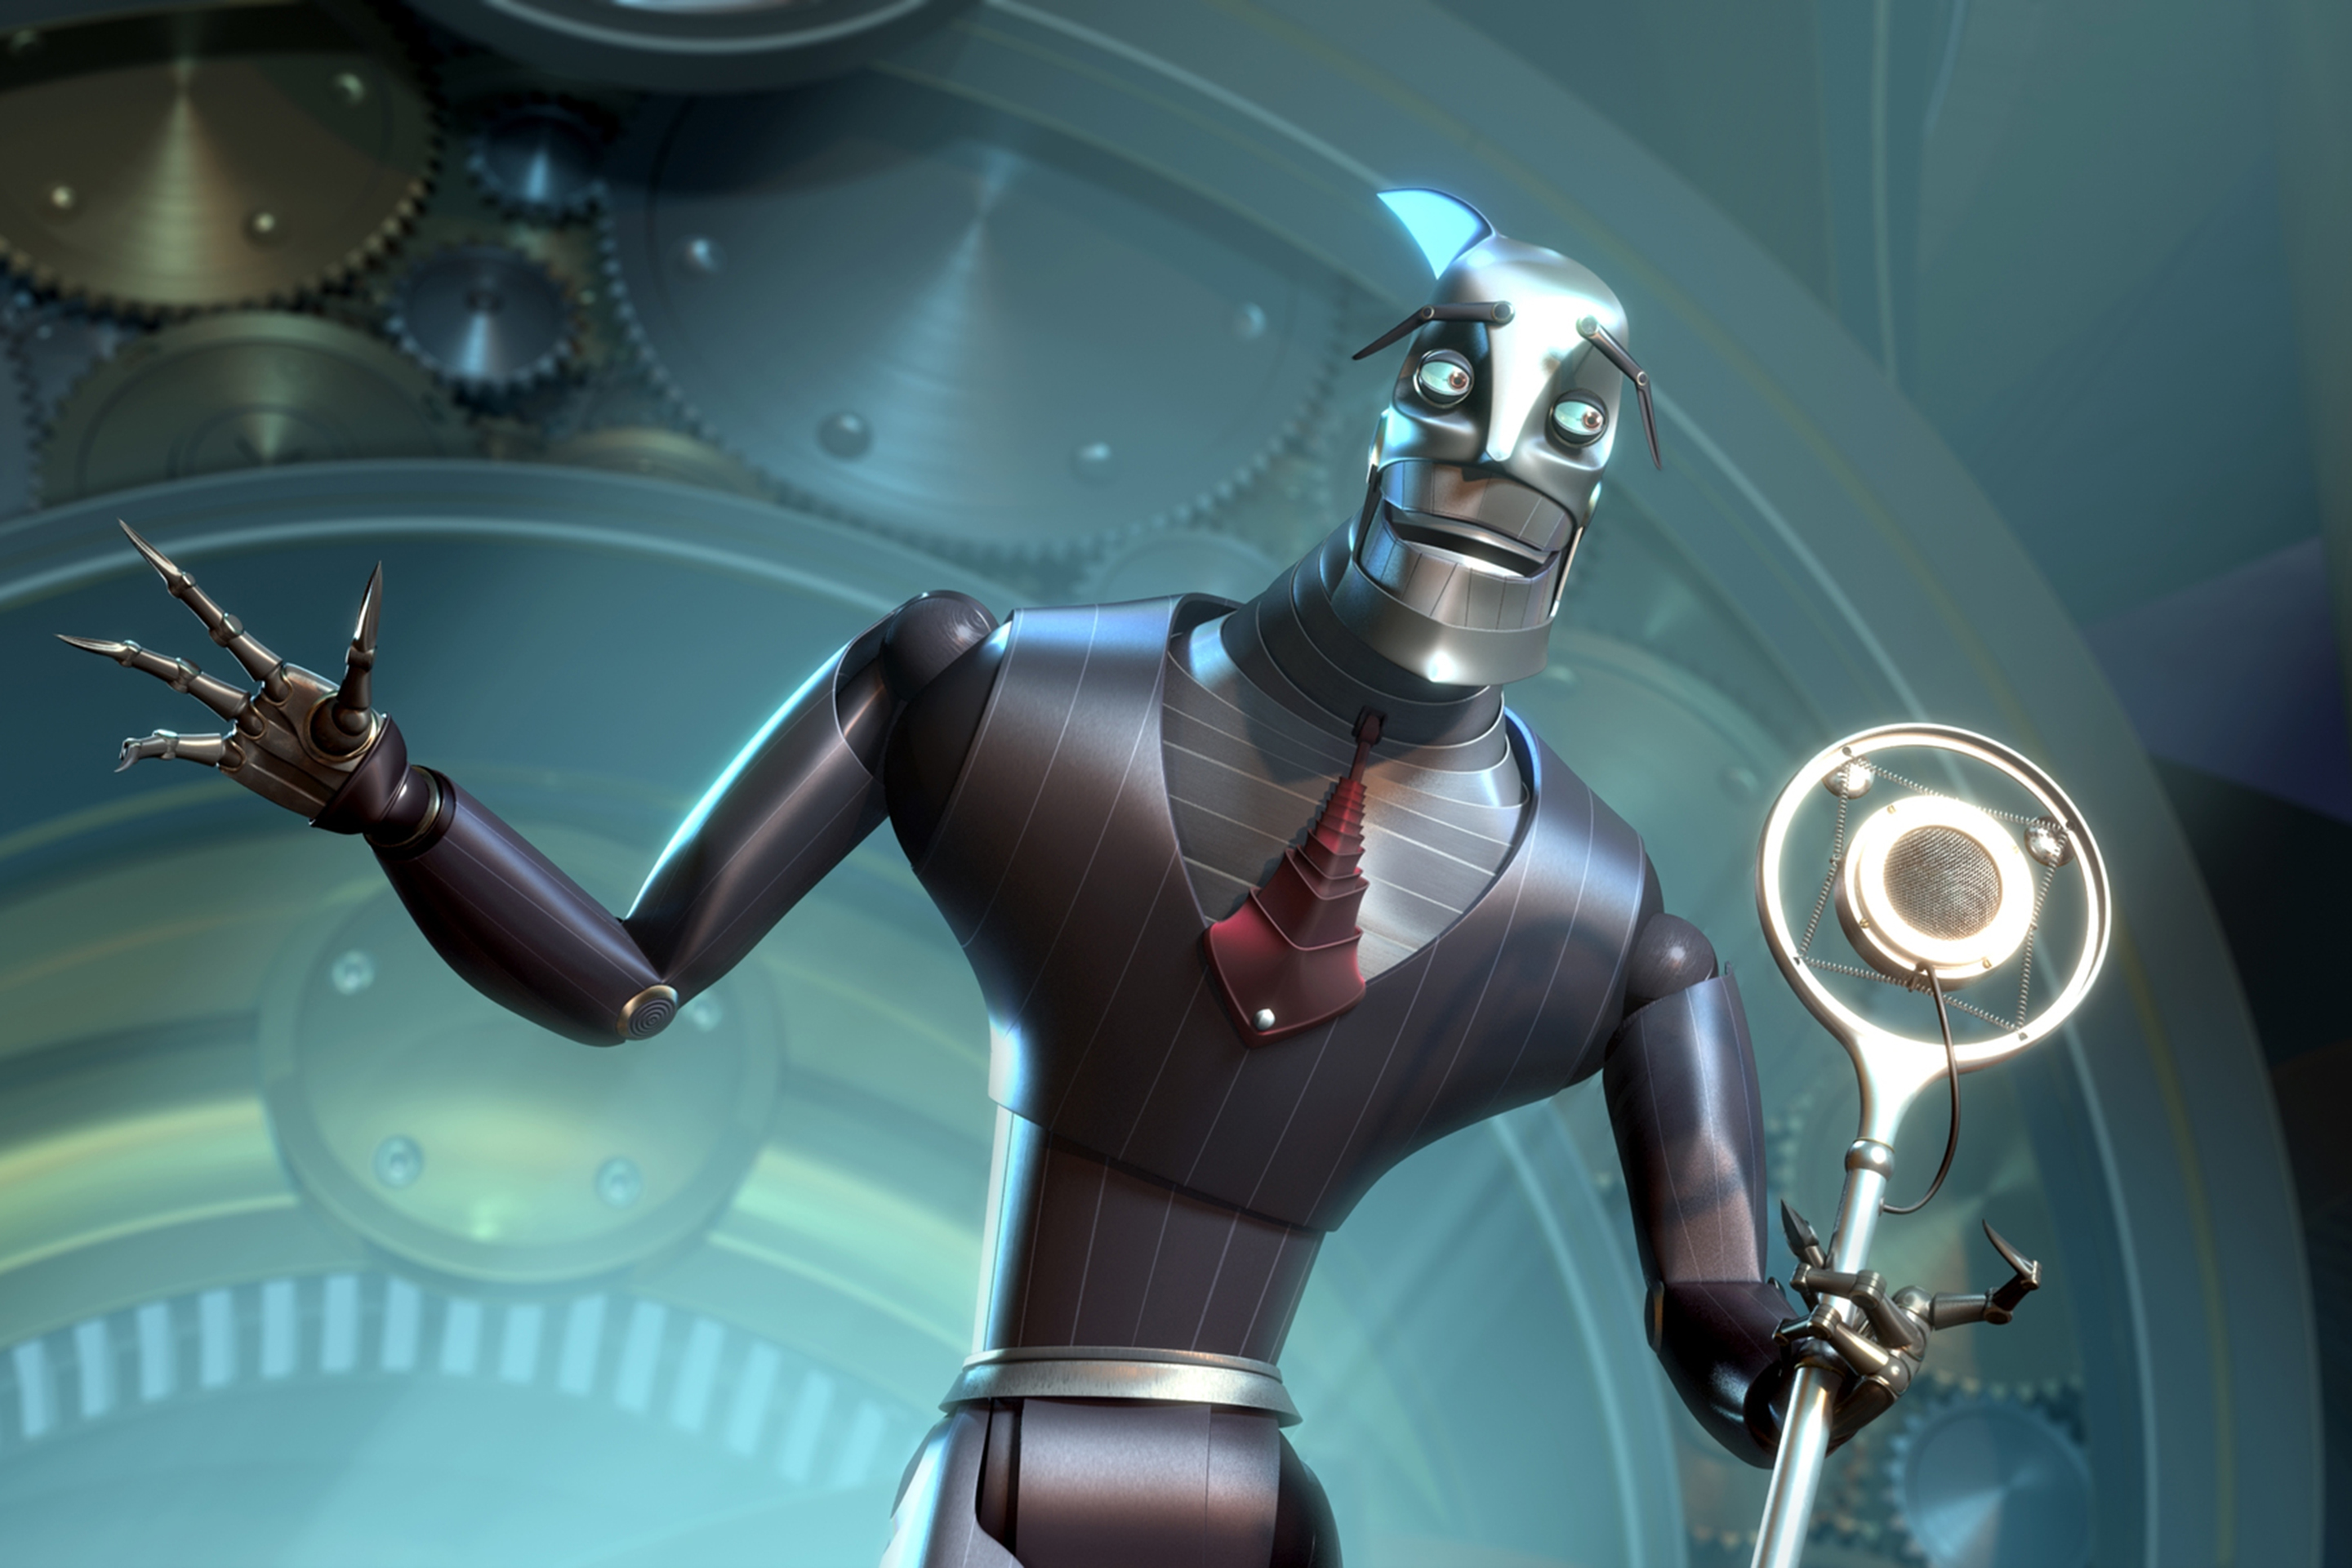 Ratchet, a greedy arrogant robot voiced by actor Greg Kinnear in the animated film 'Robots' released in 2005.